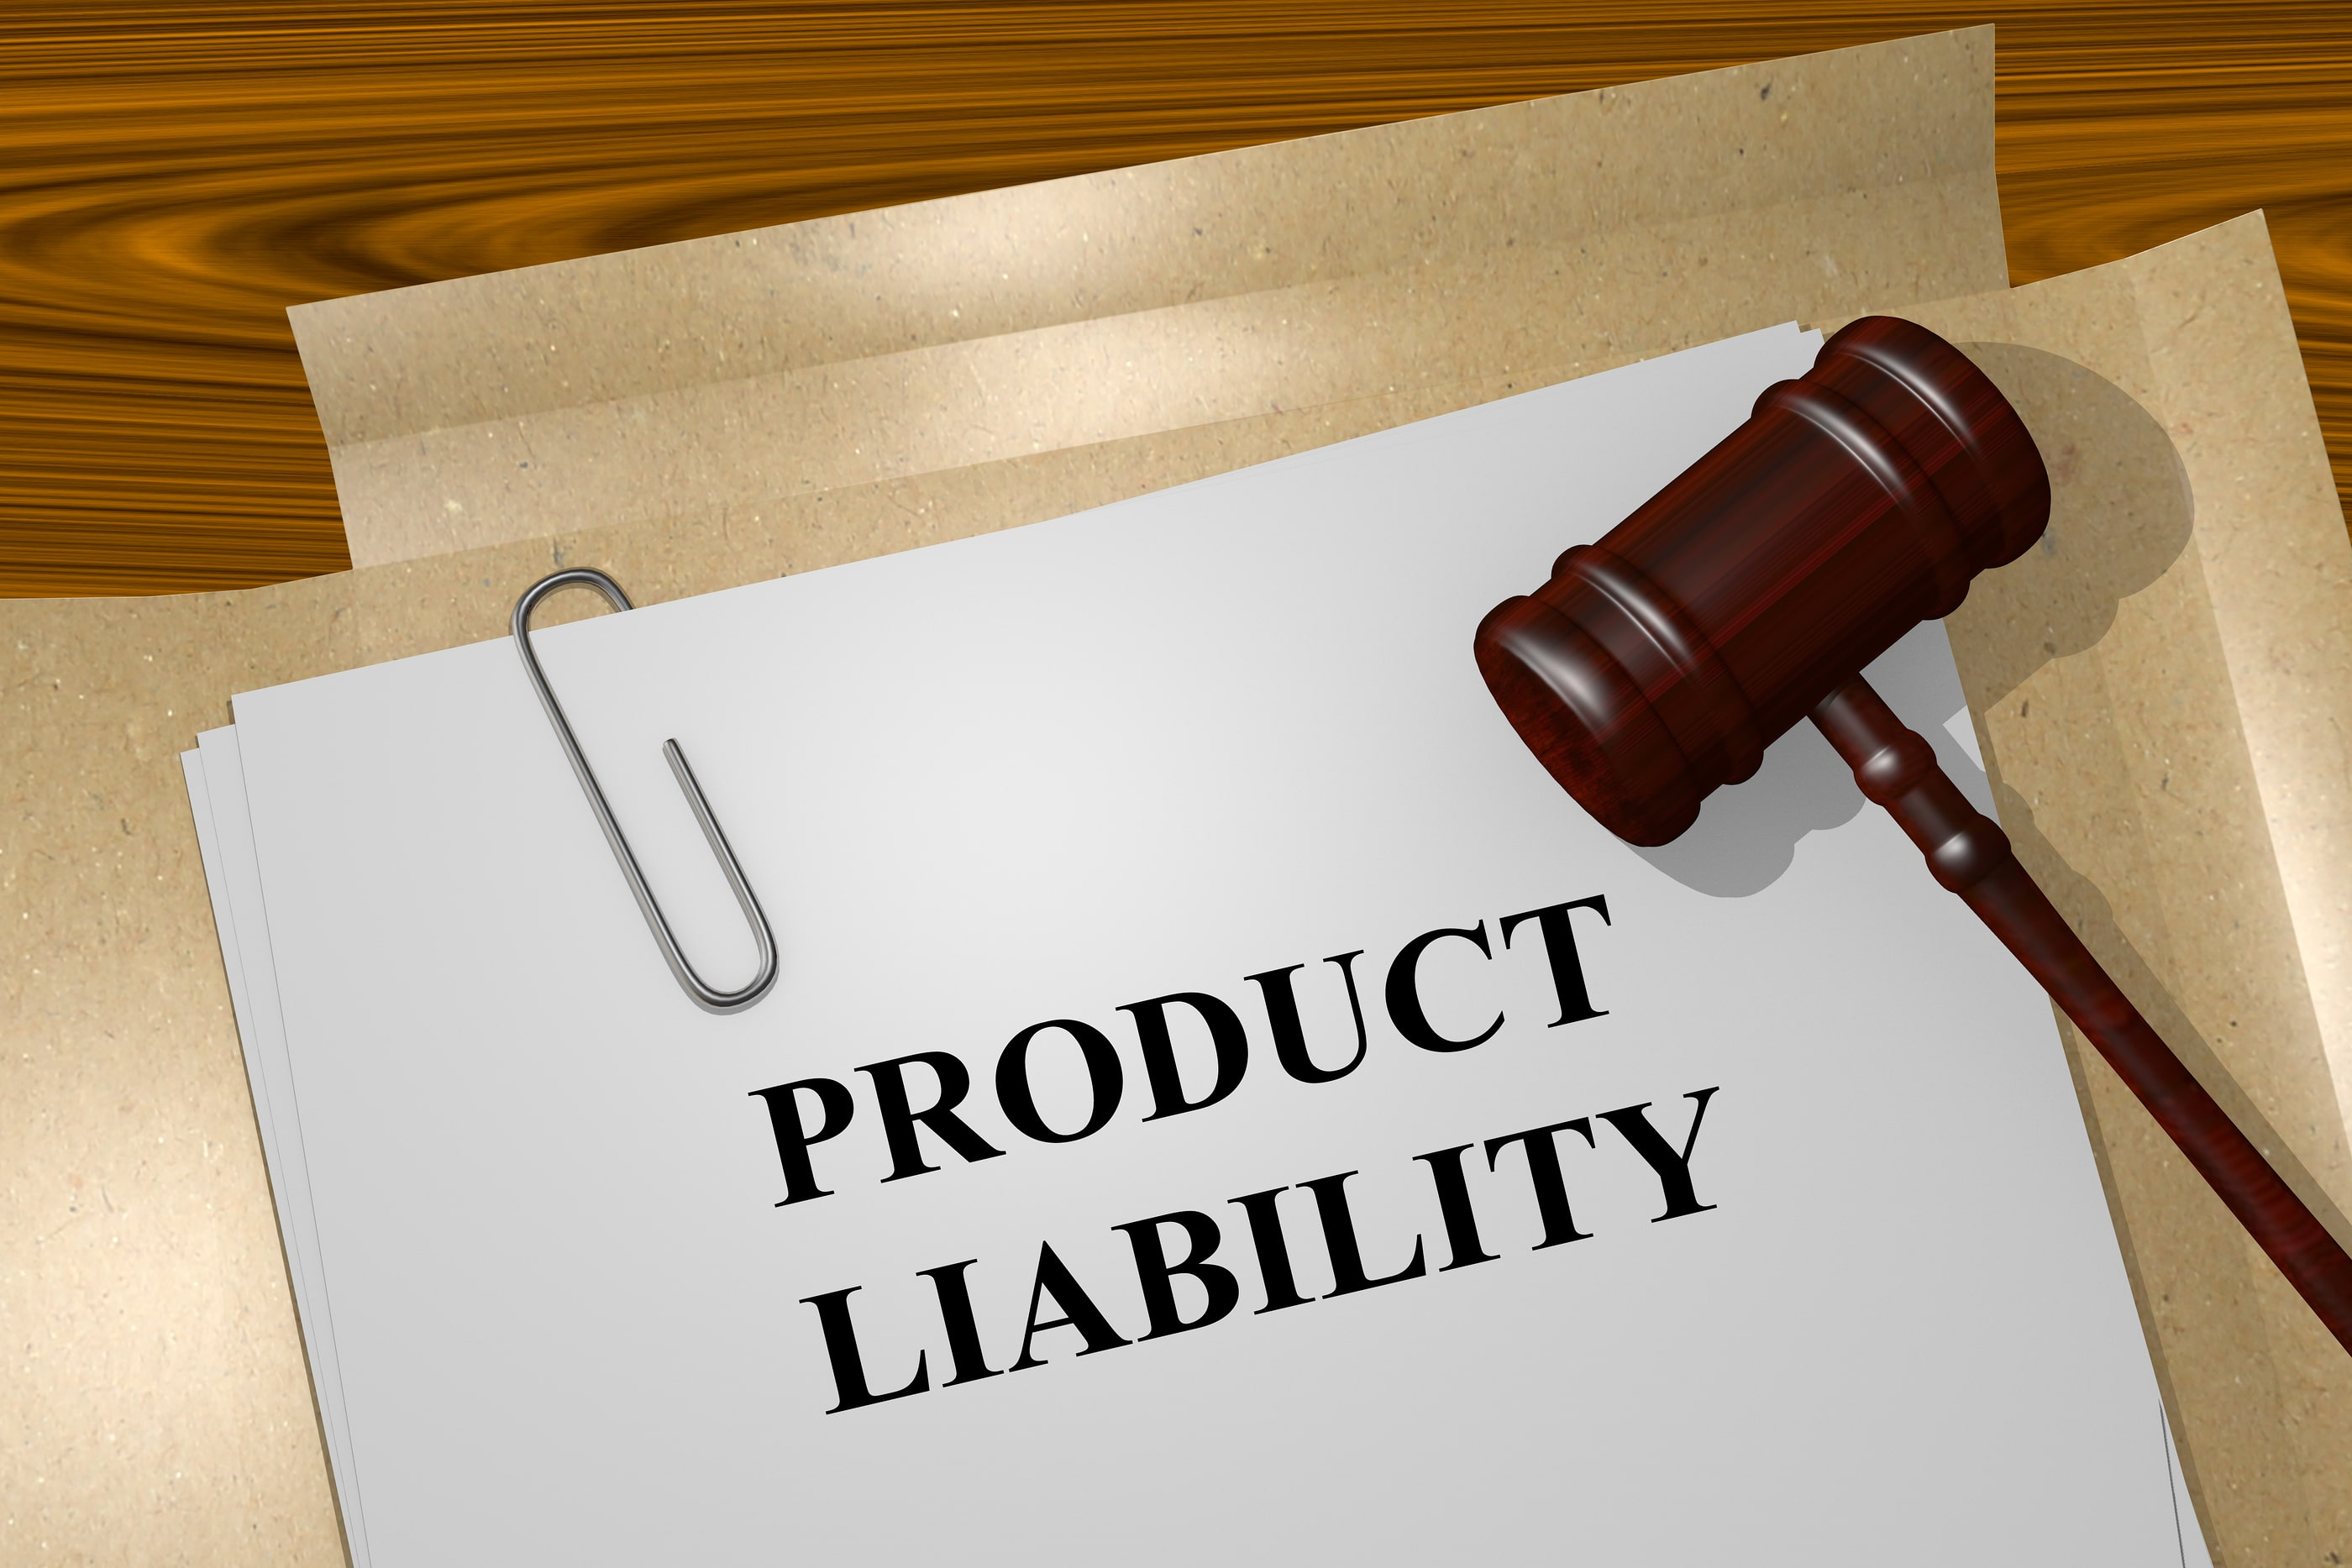 product liability judge hammer lawyer attorney personal injury mcallen mission rgv weslaco lawsuit